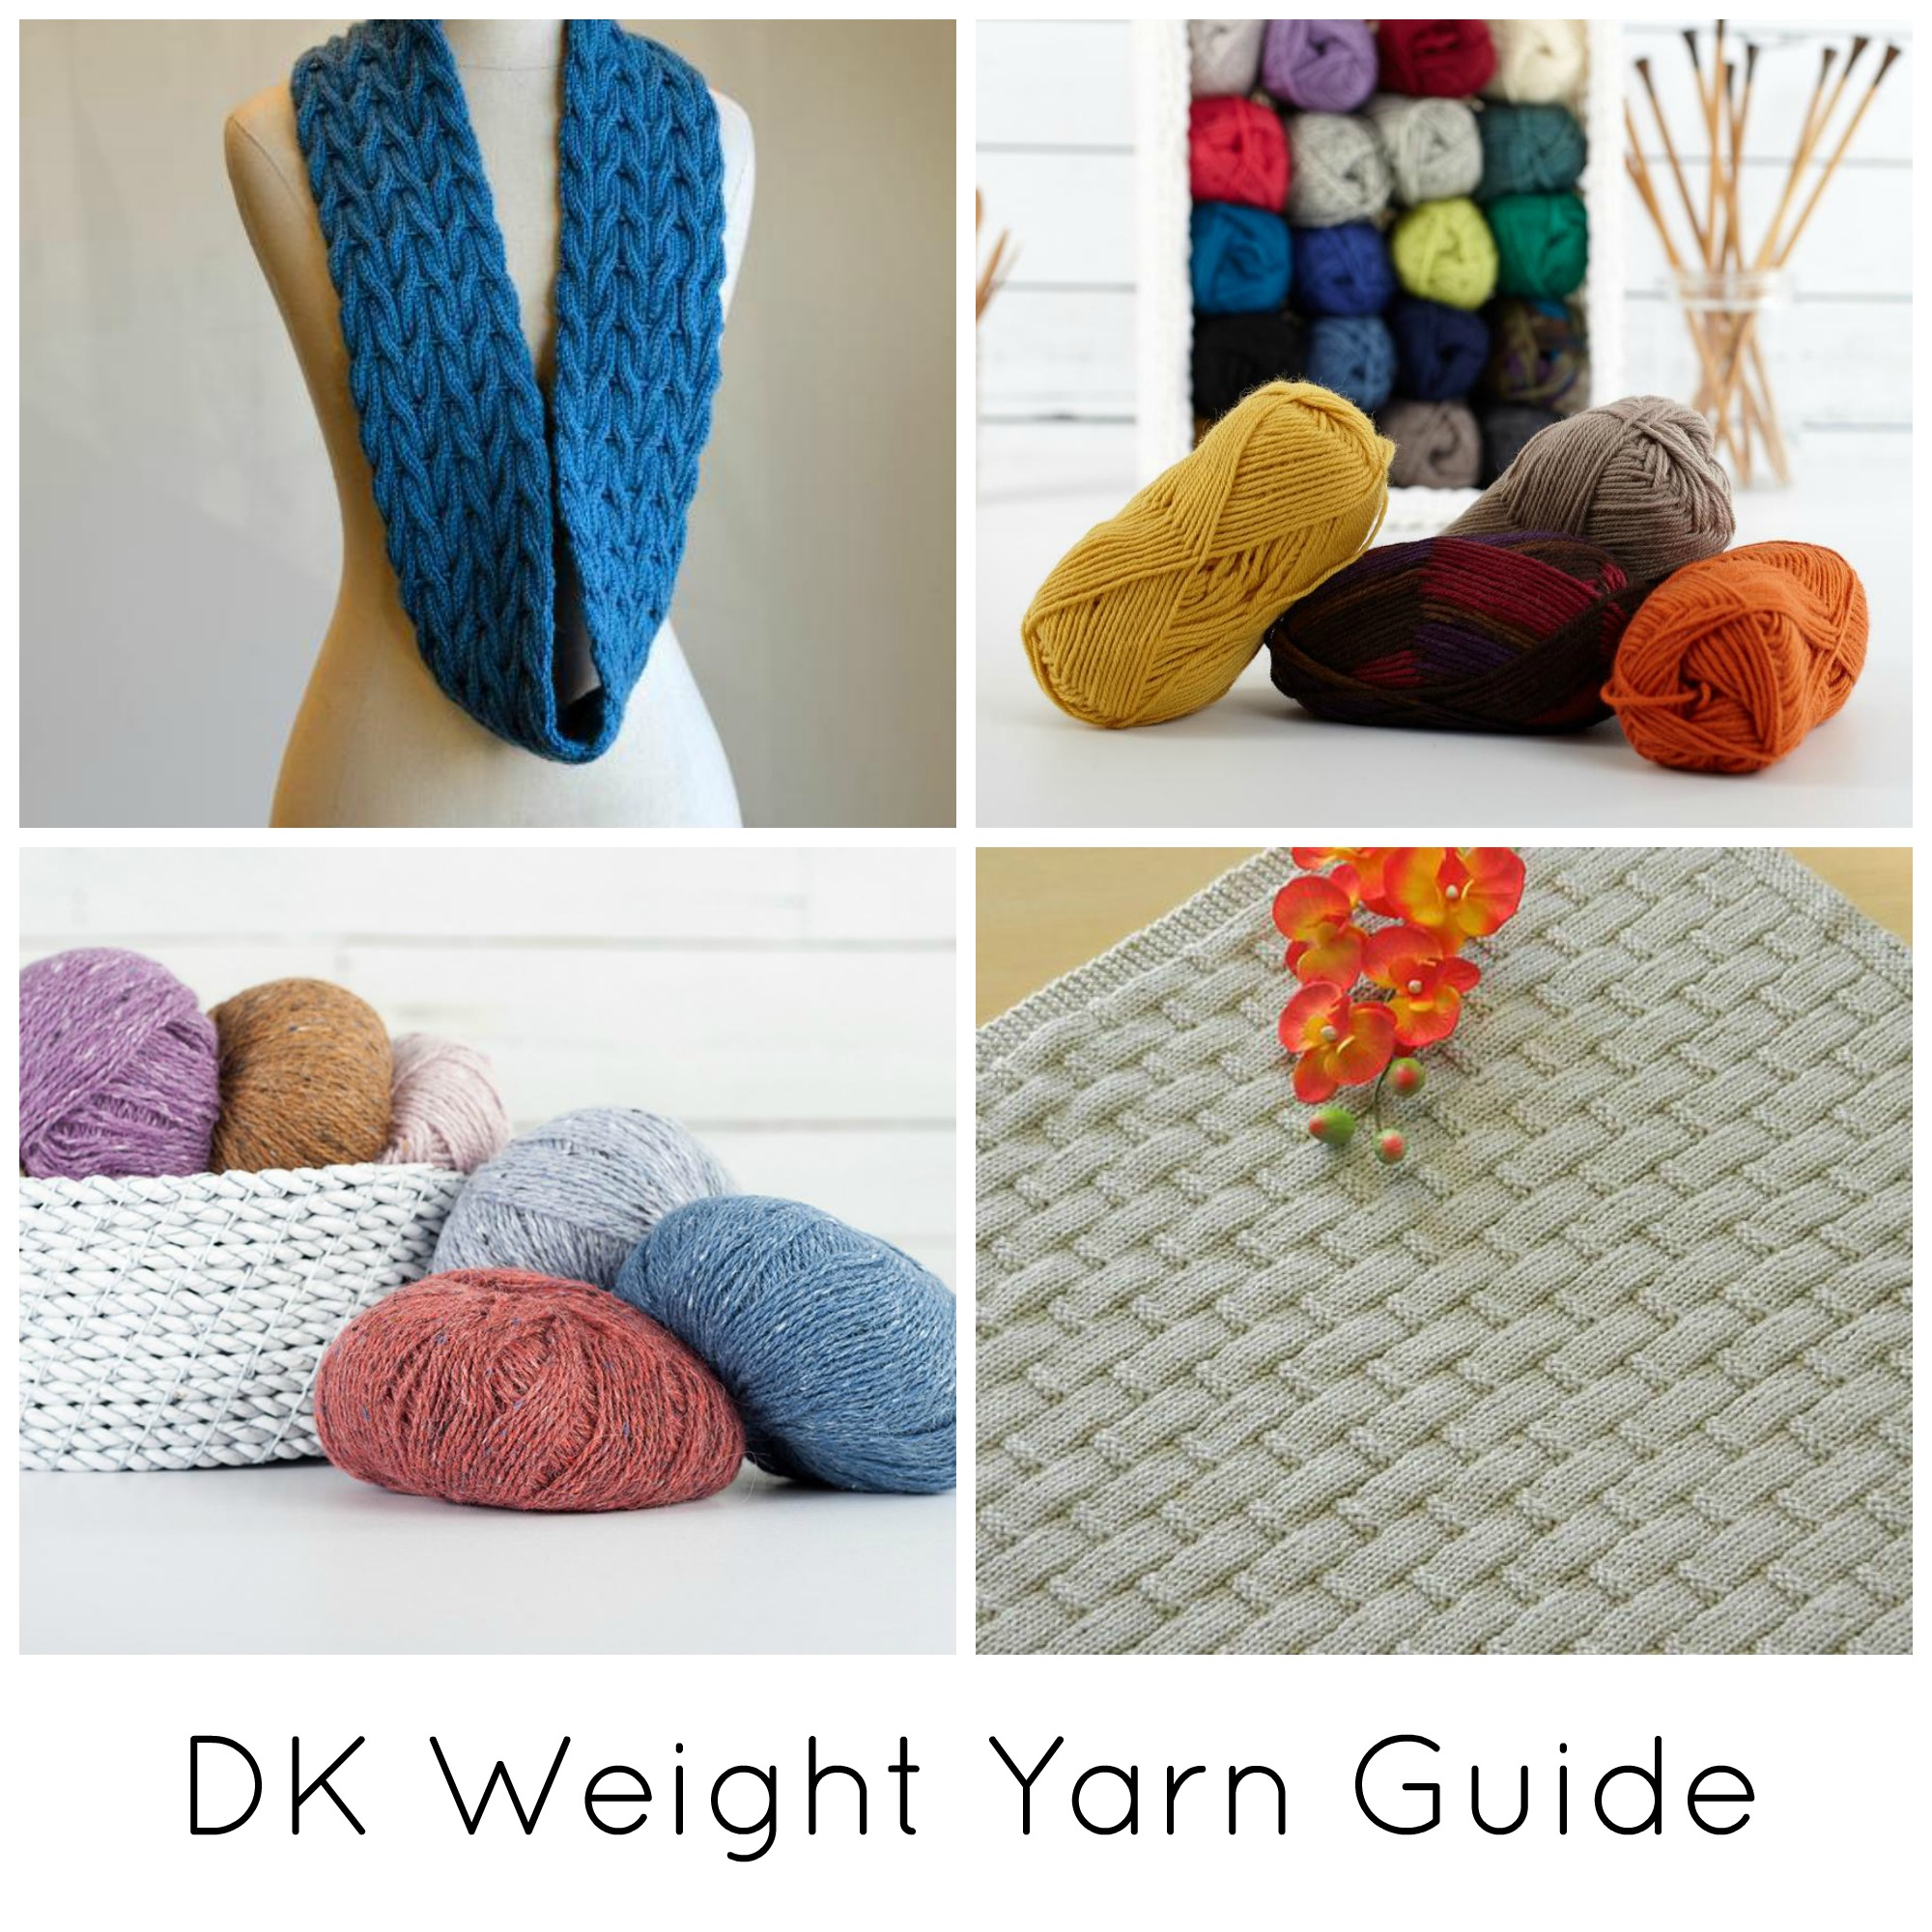 DK Weight Yarn Guide